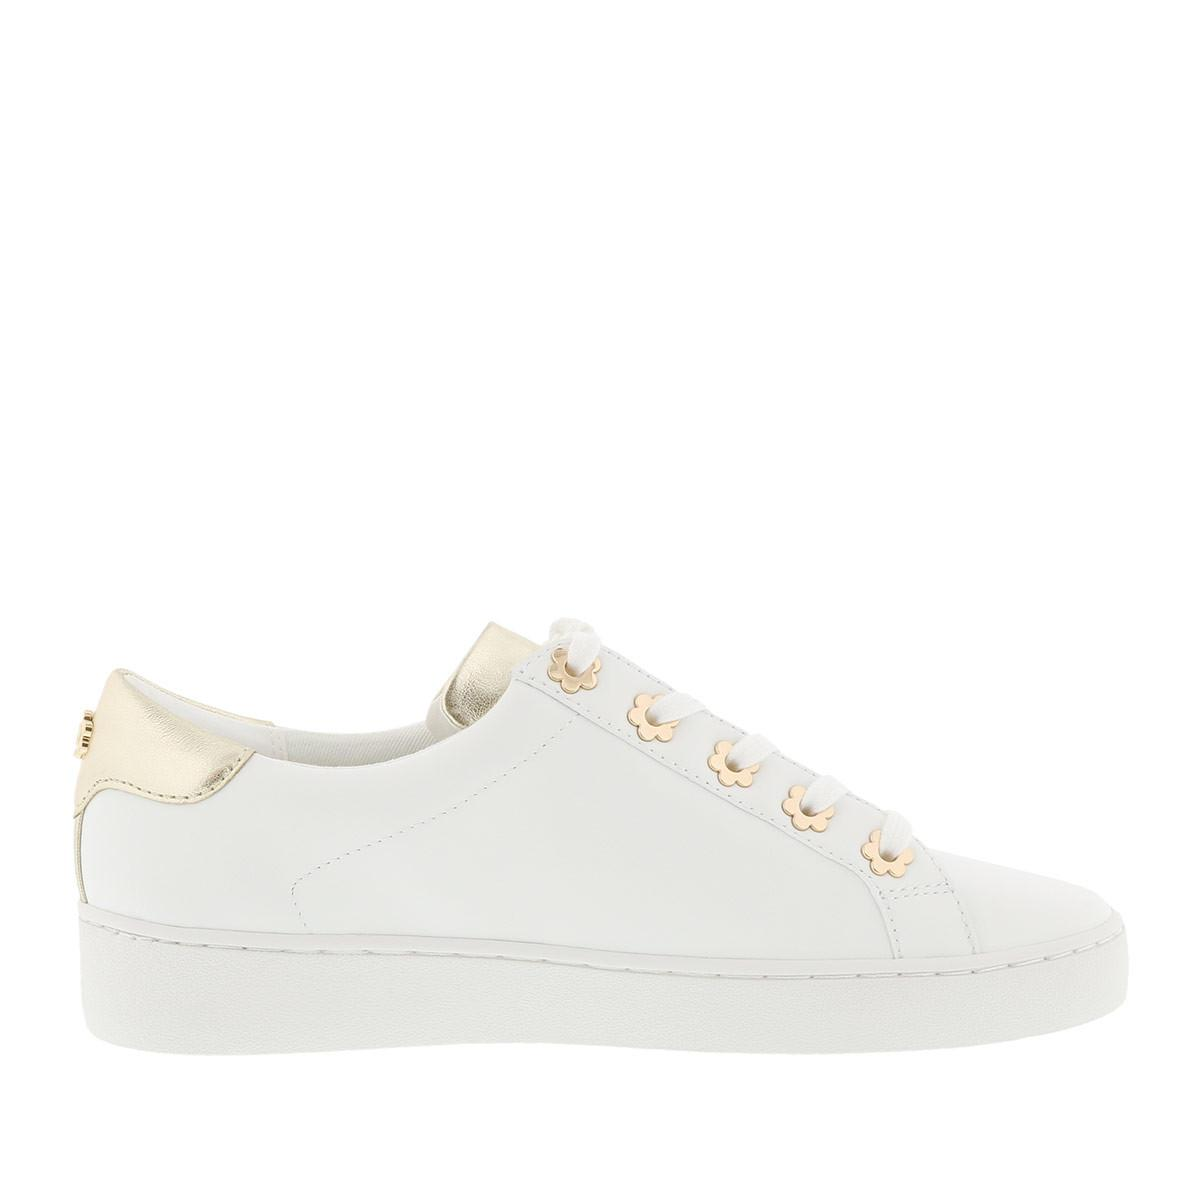 Michael Kors Leather Irving Lace Up Sneaker Optic White/gold in Metallic